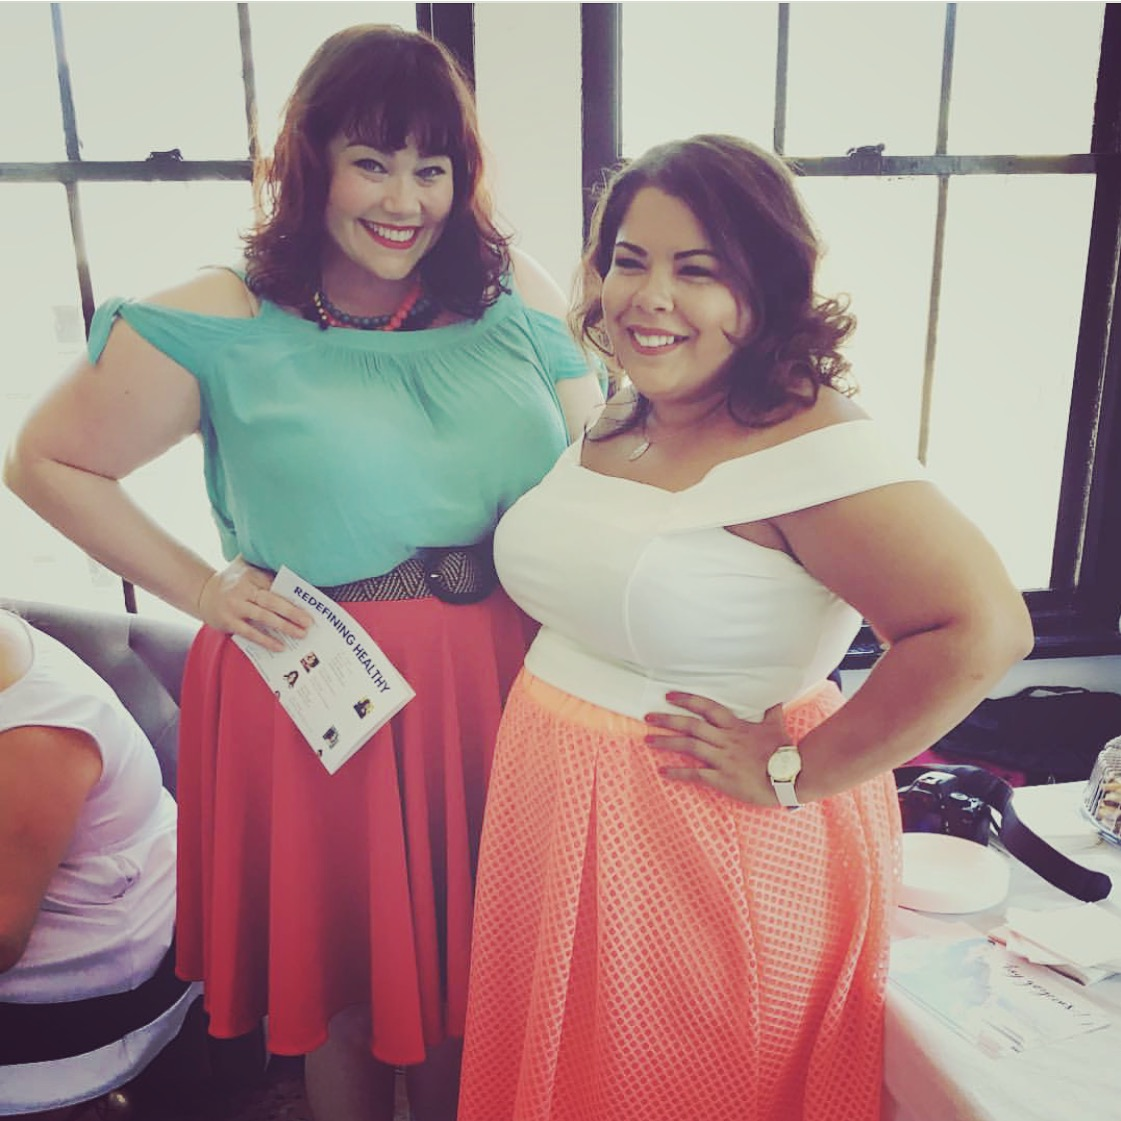 Plus Size Bloggers Amber from Style Plus Curves with Darlene from Suits, Heels and Curves